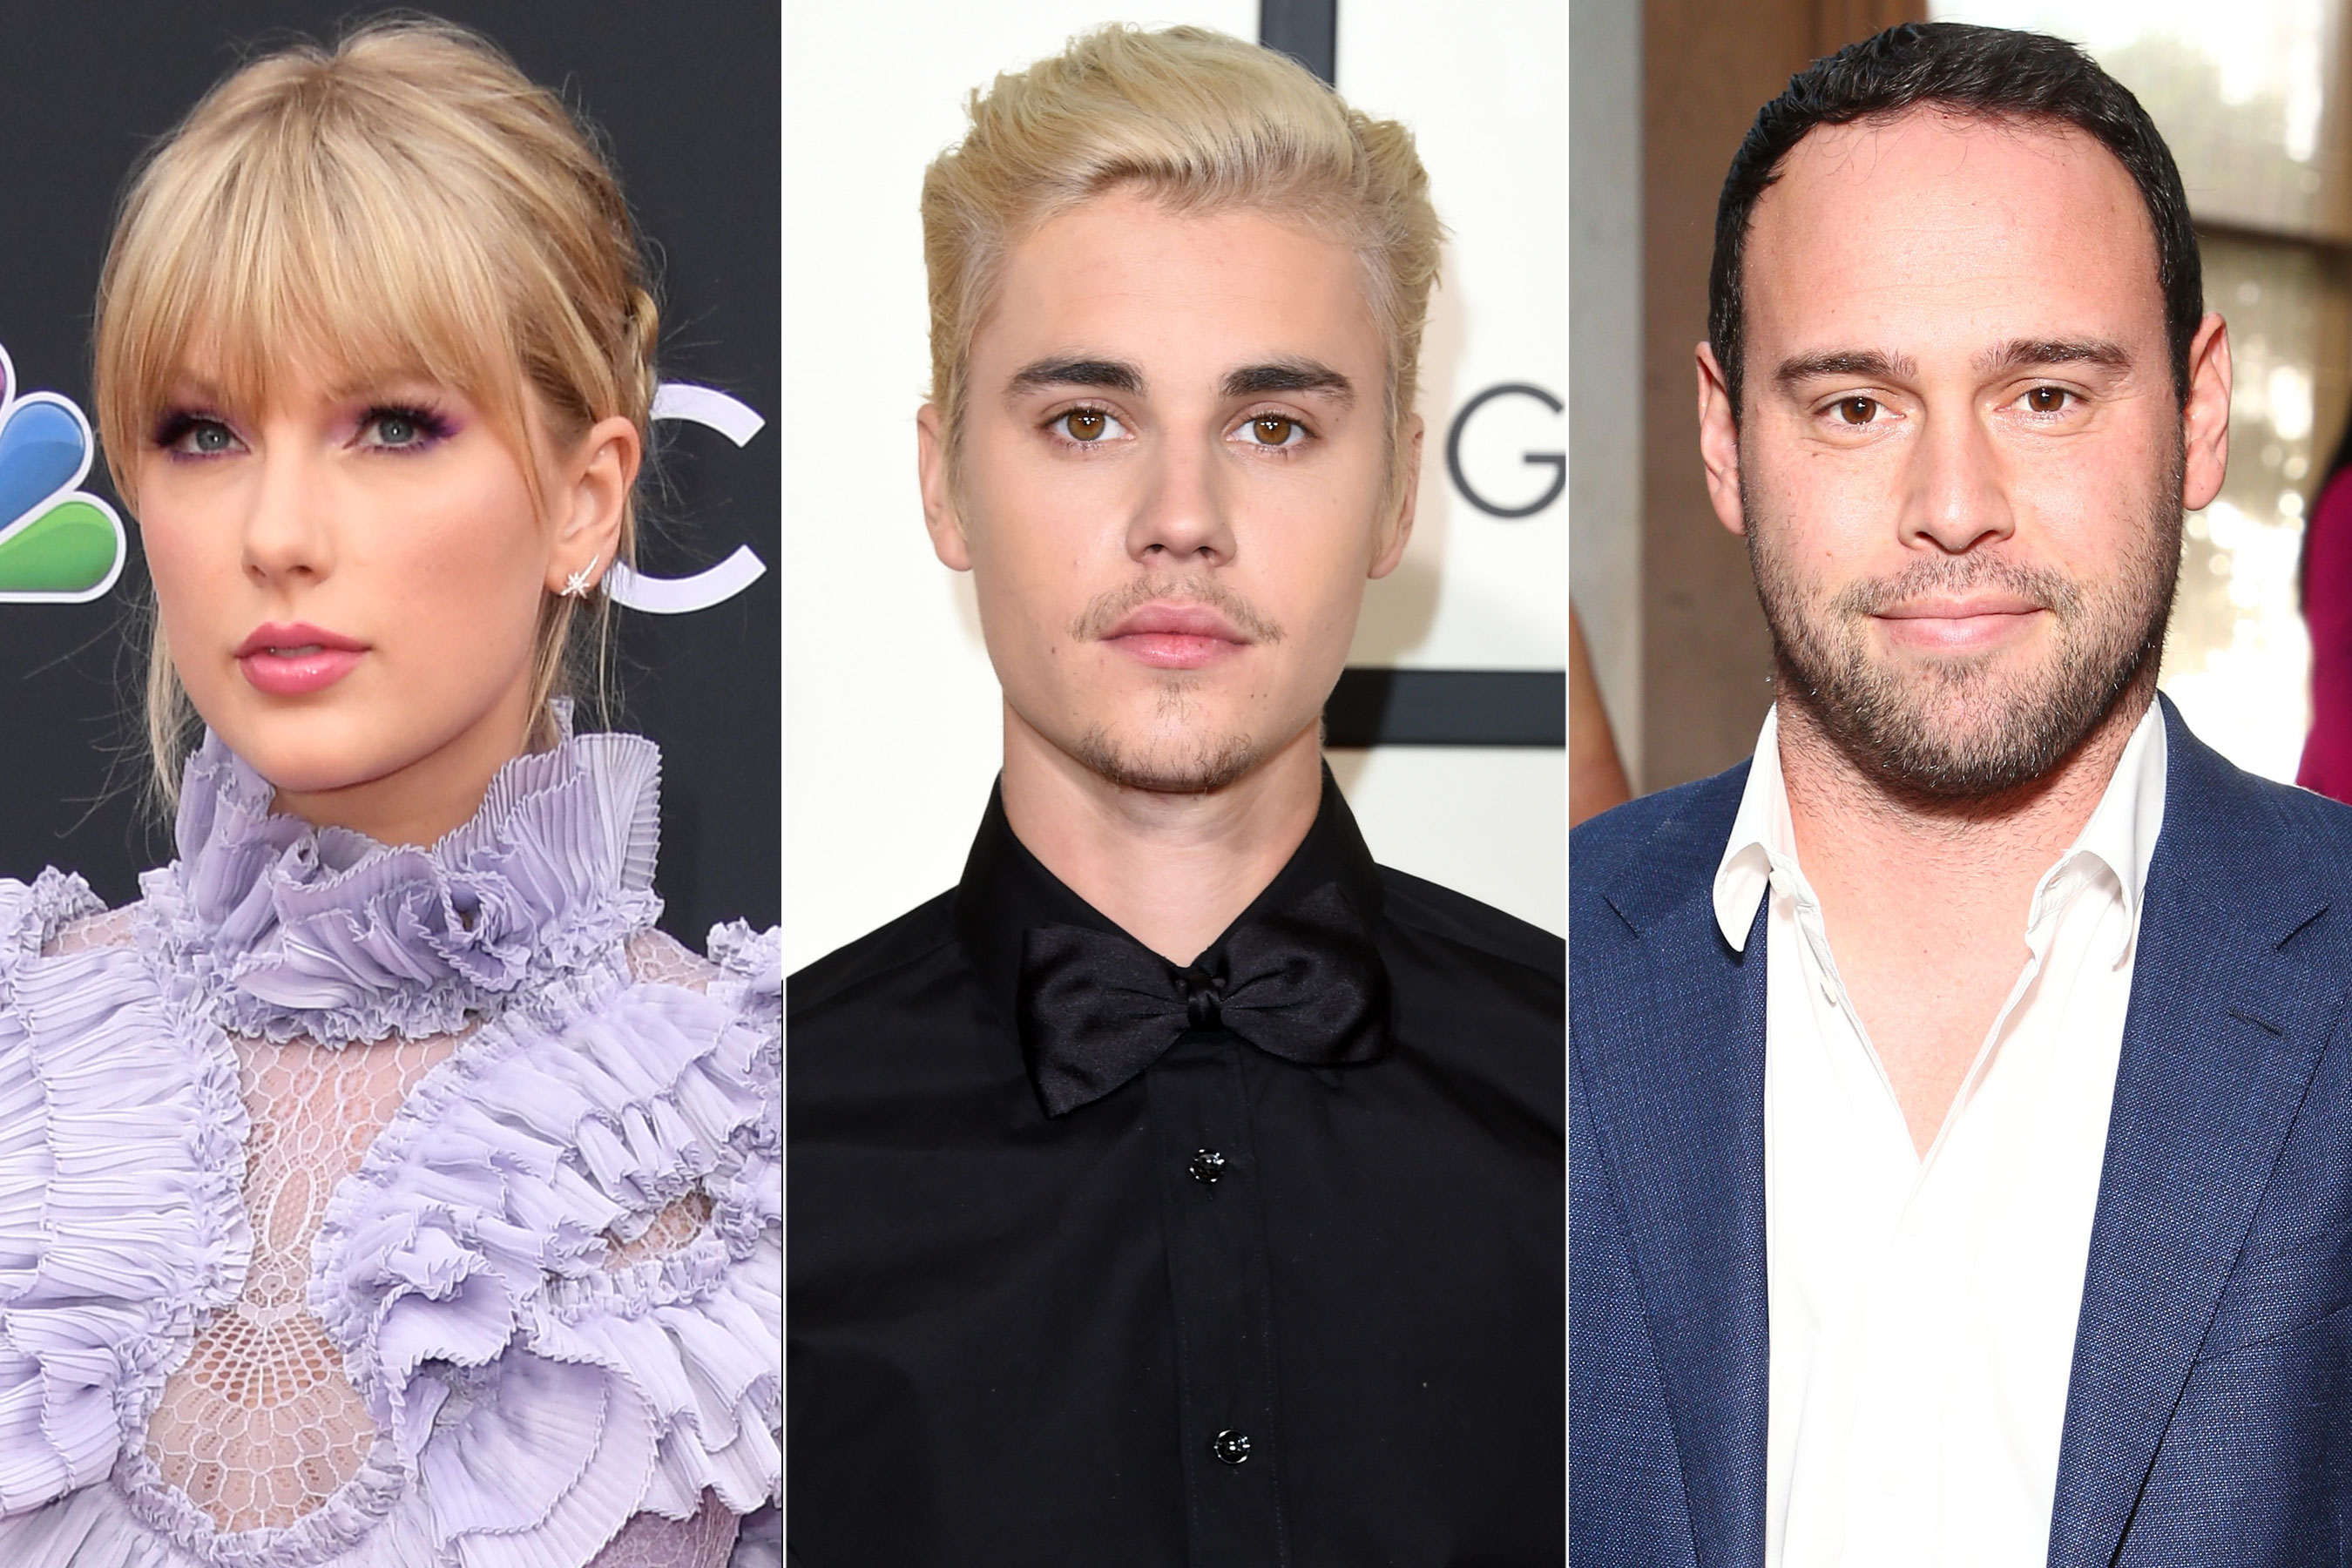 Justin Bieber And Hailey Baldwin Spend Fourth Of July With Scooter Braun Amid Taylor Swift Drama Nestia